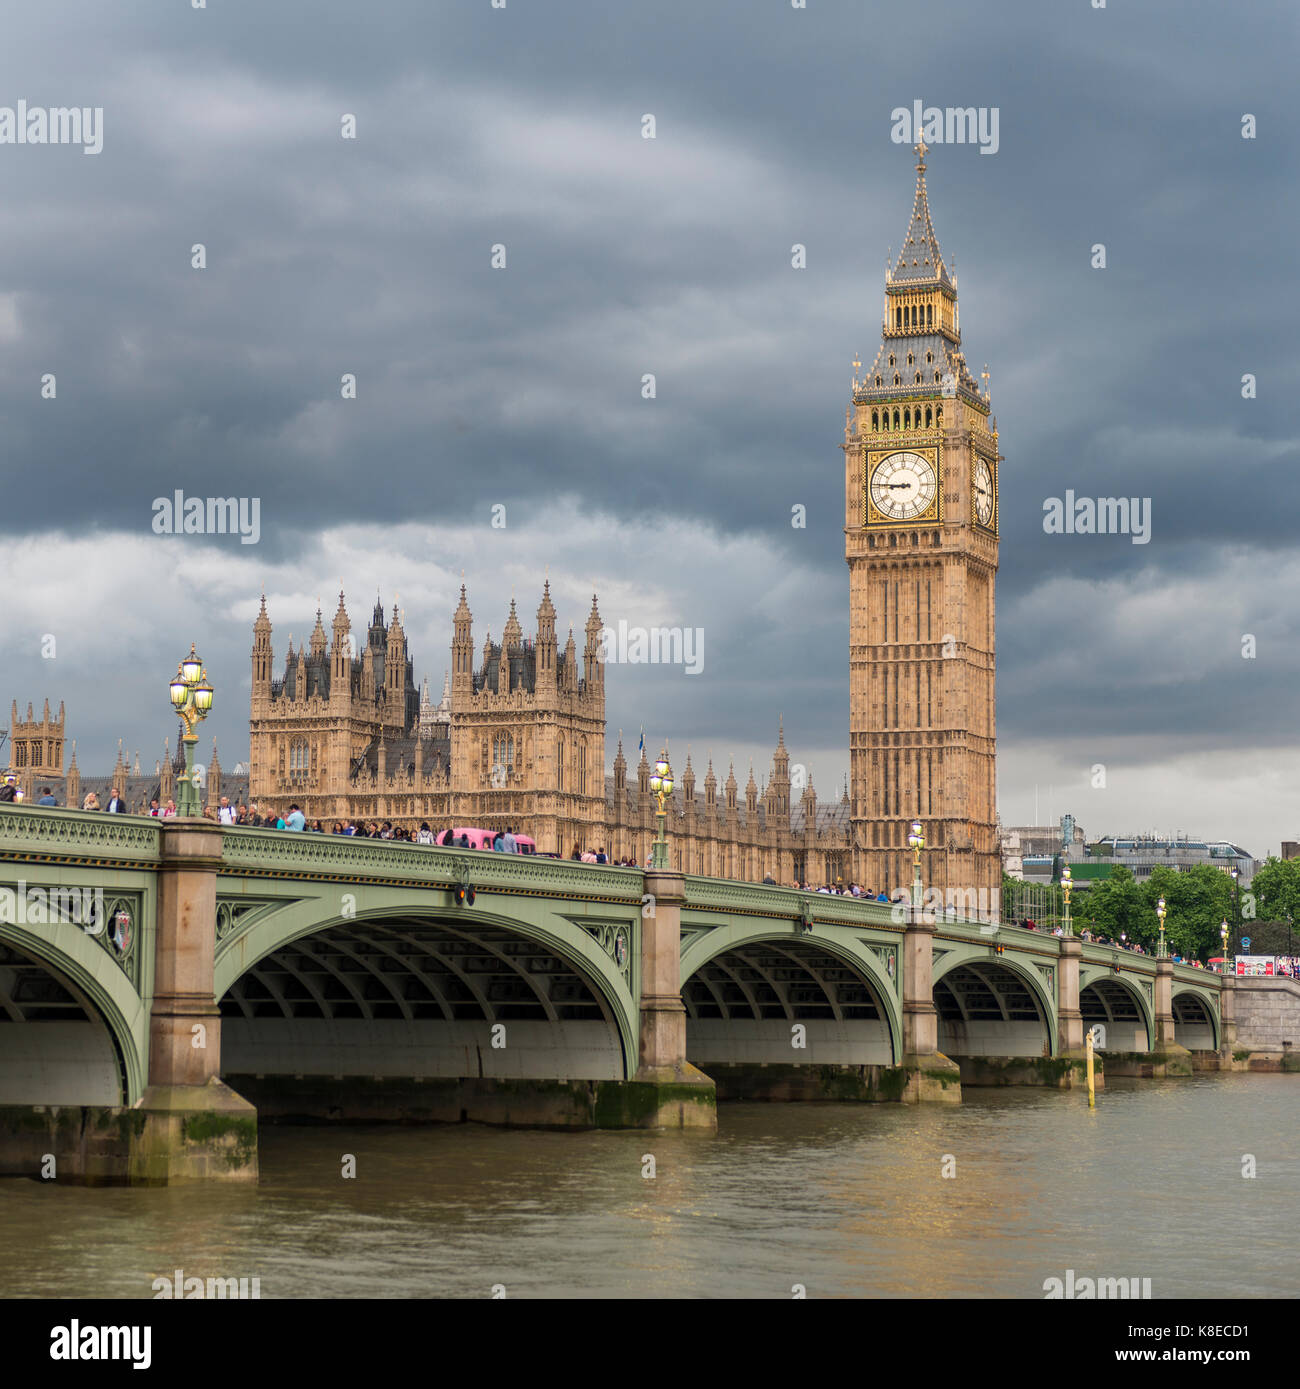 View over the river Thames, Westminster Bridge, London, England, Great Britain, Houses of Parliament, Big Ben - Stock Image